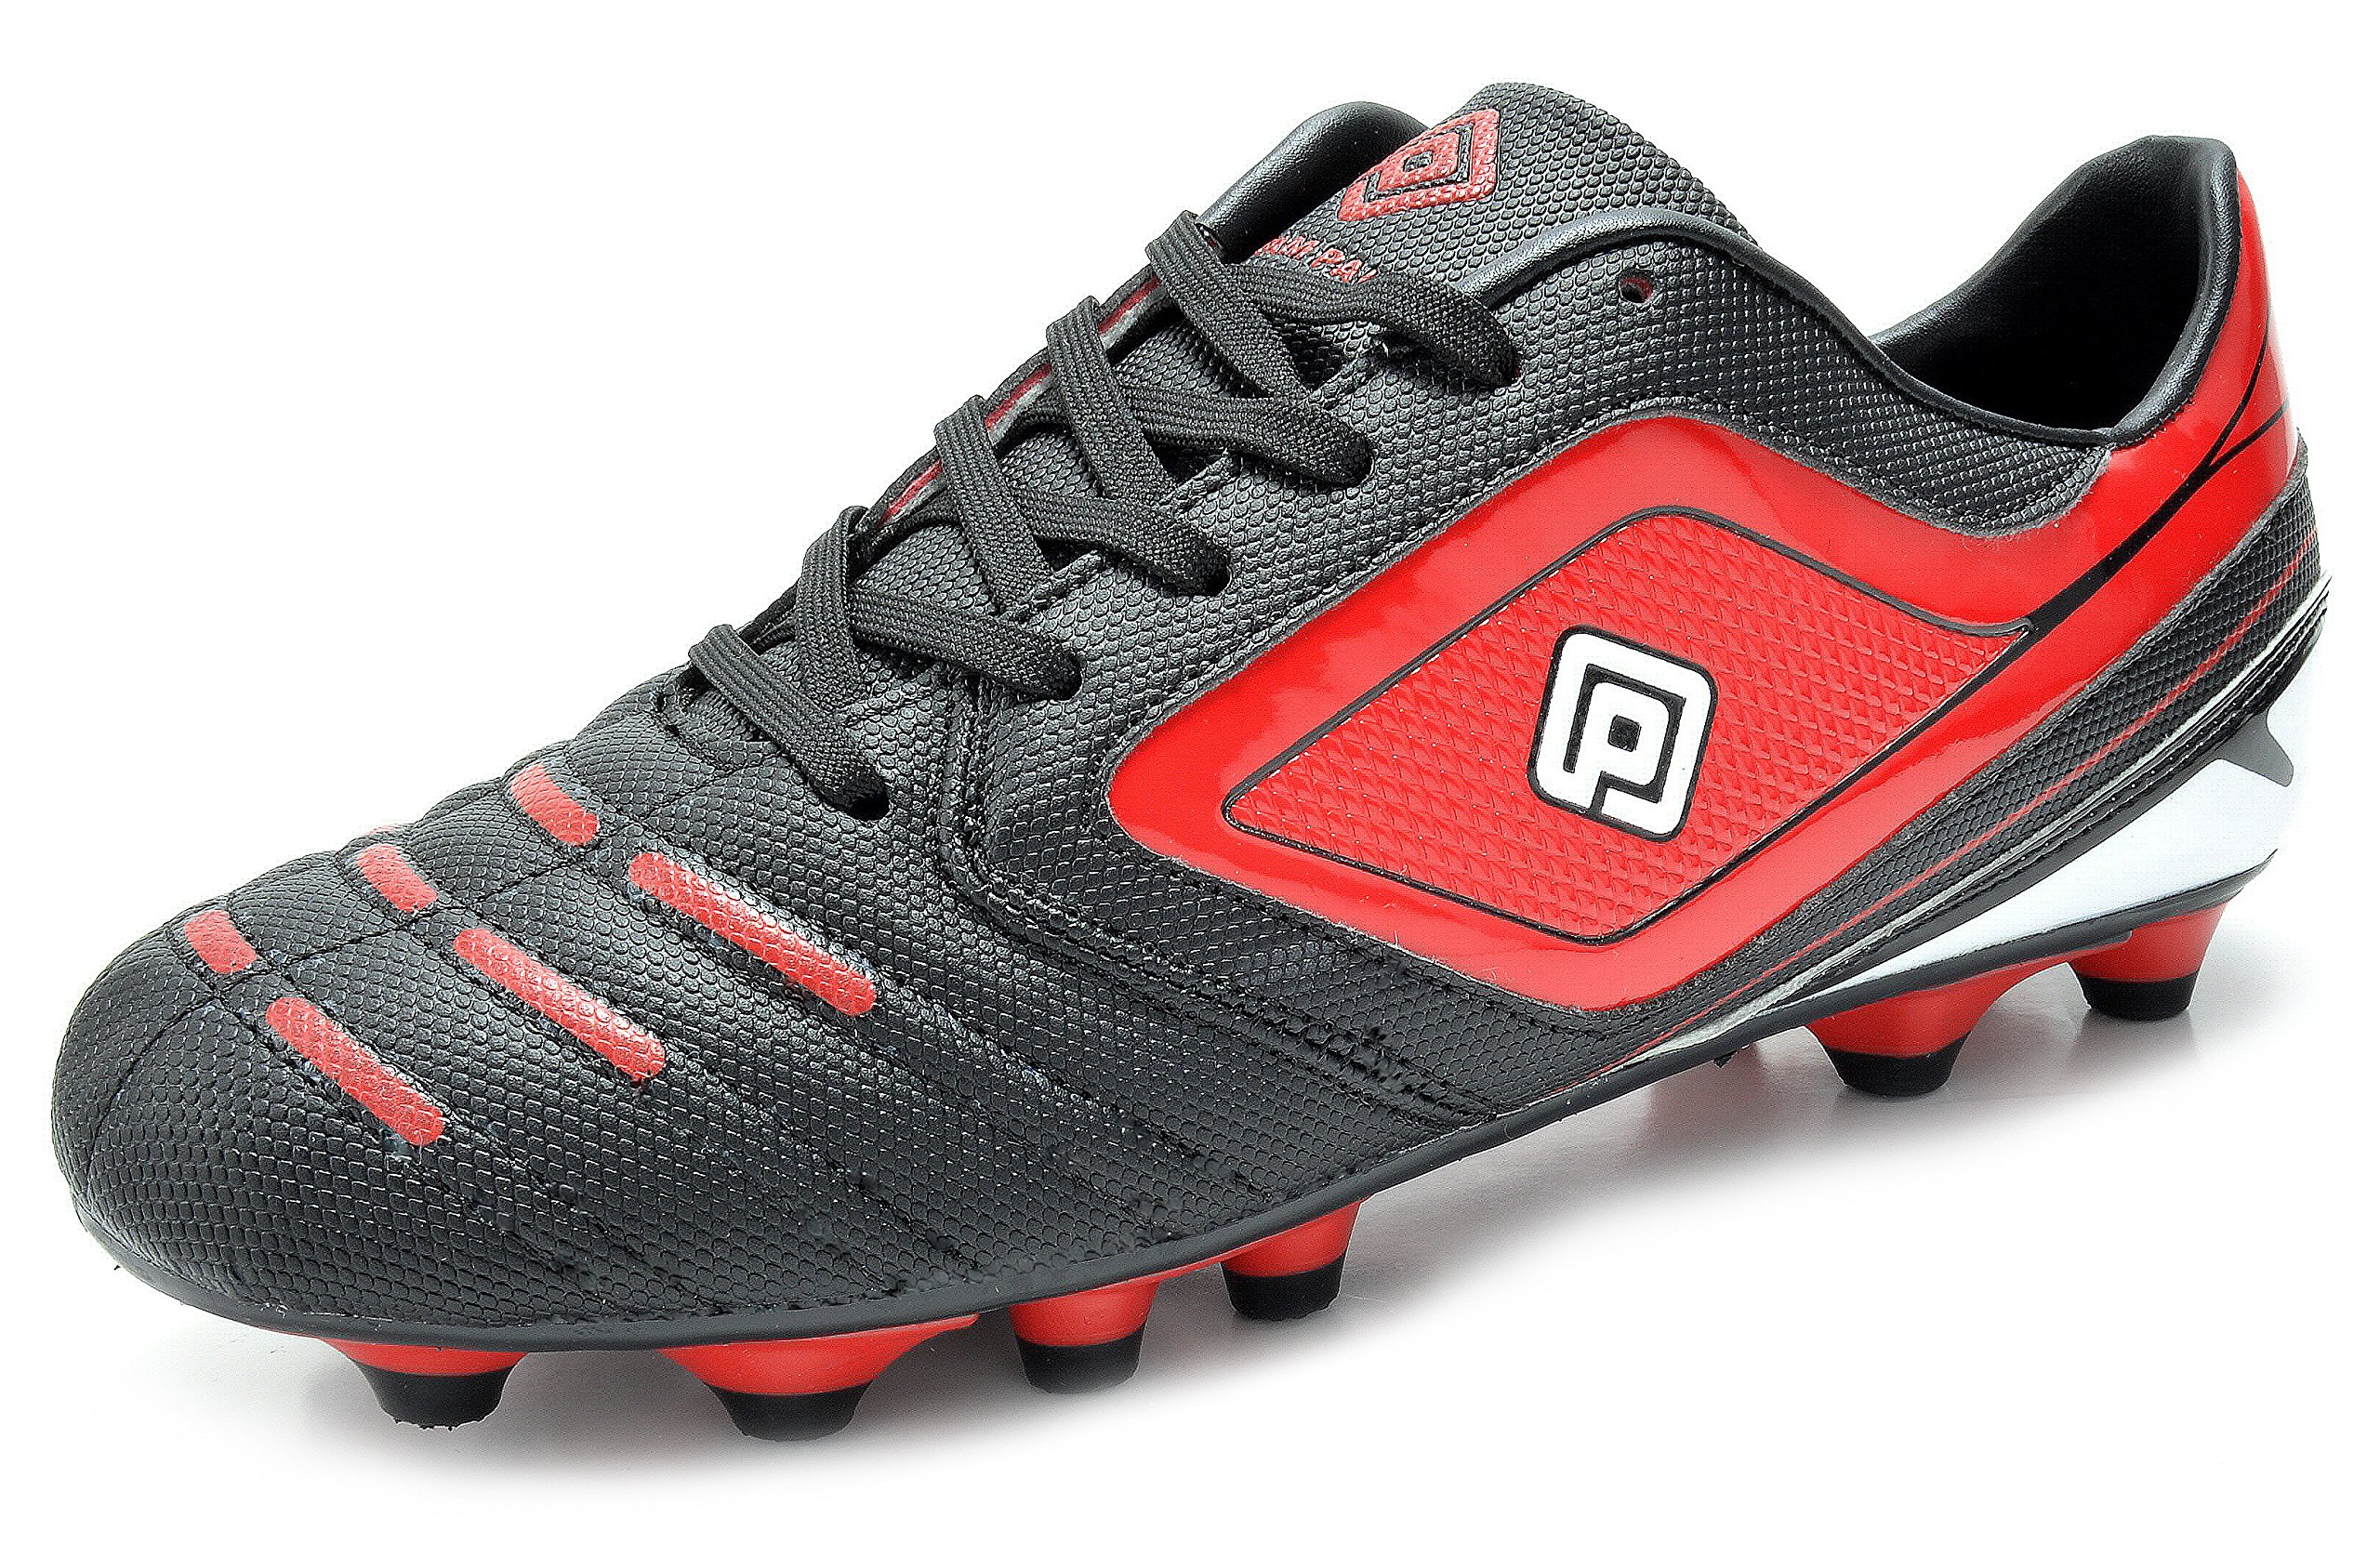 DREAM PAIRS 151028 Men's Sport Flexible Athletic Free Running Light Weight Indoor/Outdoor Lace up Soccer Shoes BLK-RED-WHT Size 9.5